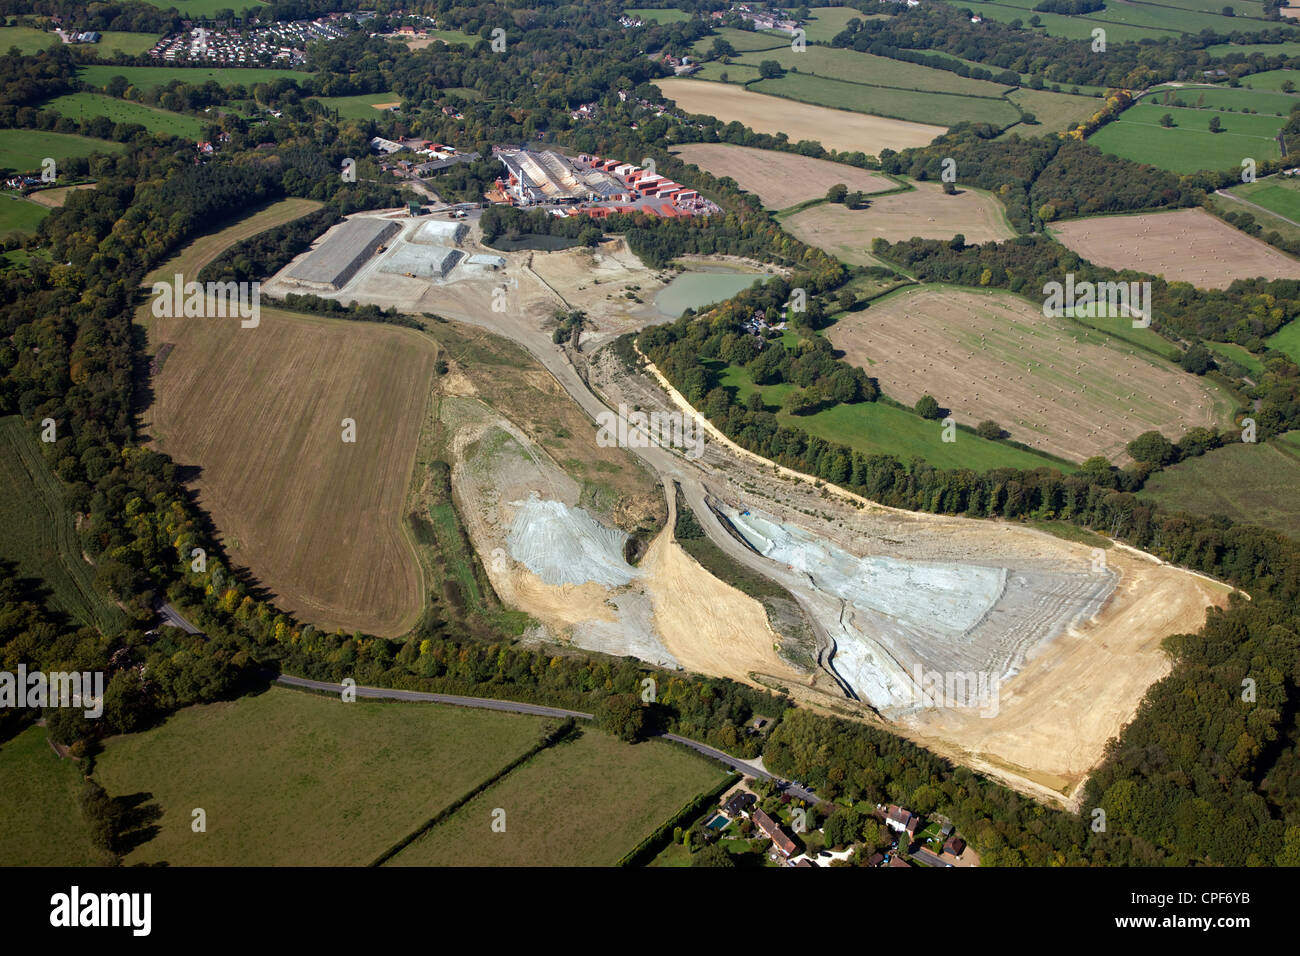 aerial view of Ibstock Brick quarry at Newdigate in Surrey - Stock Image